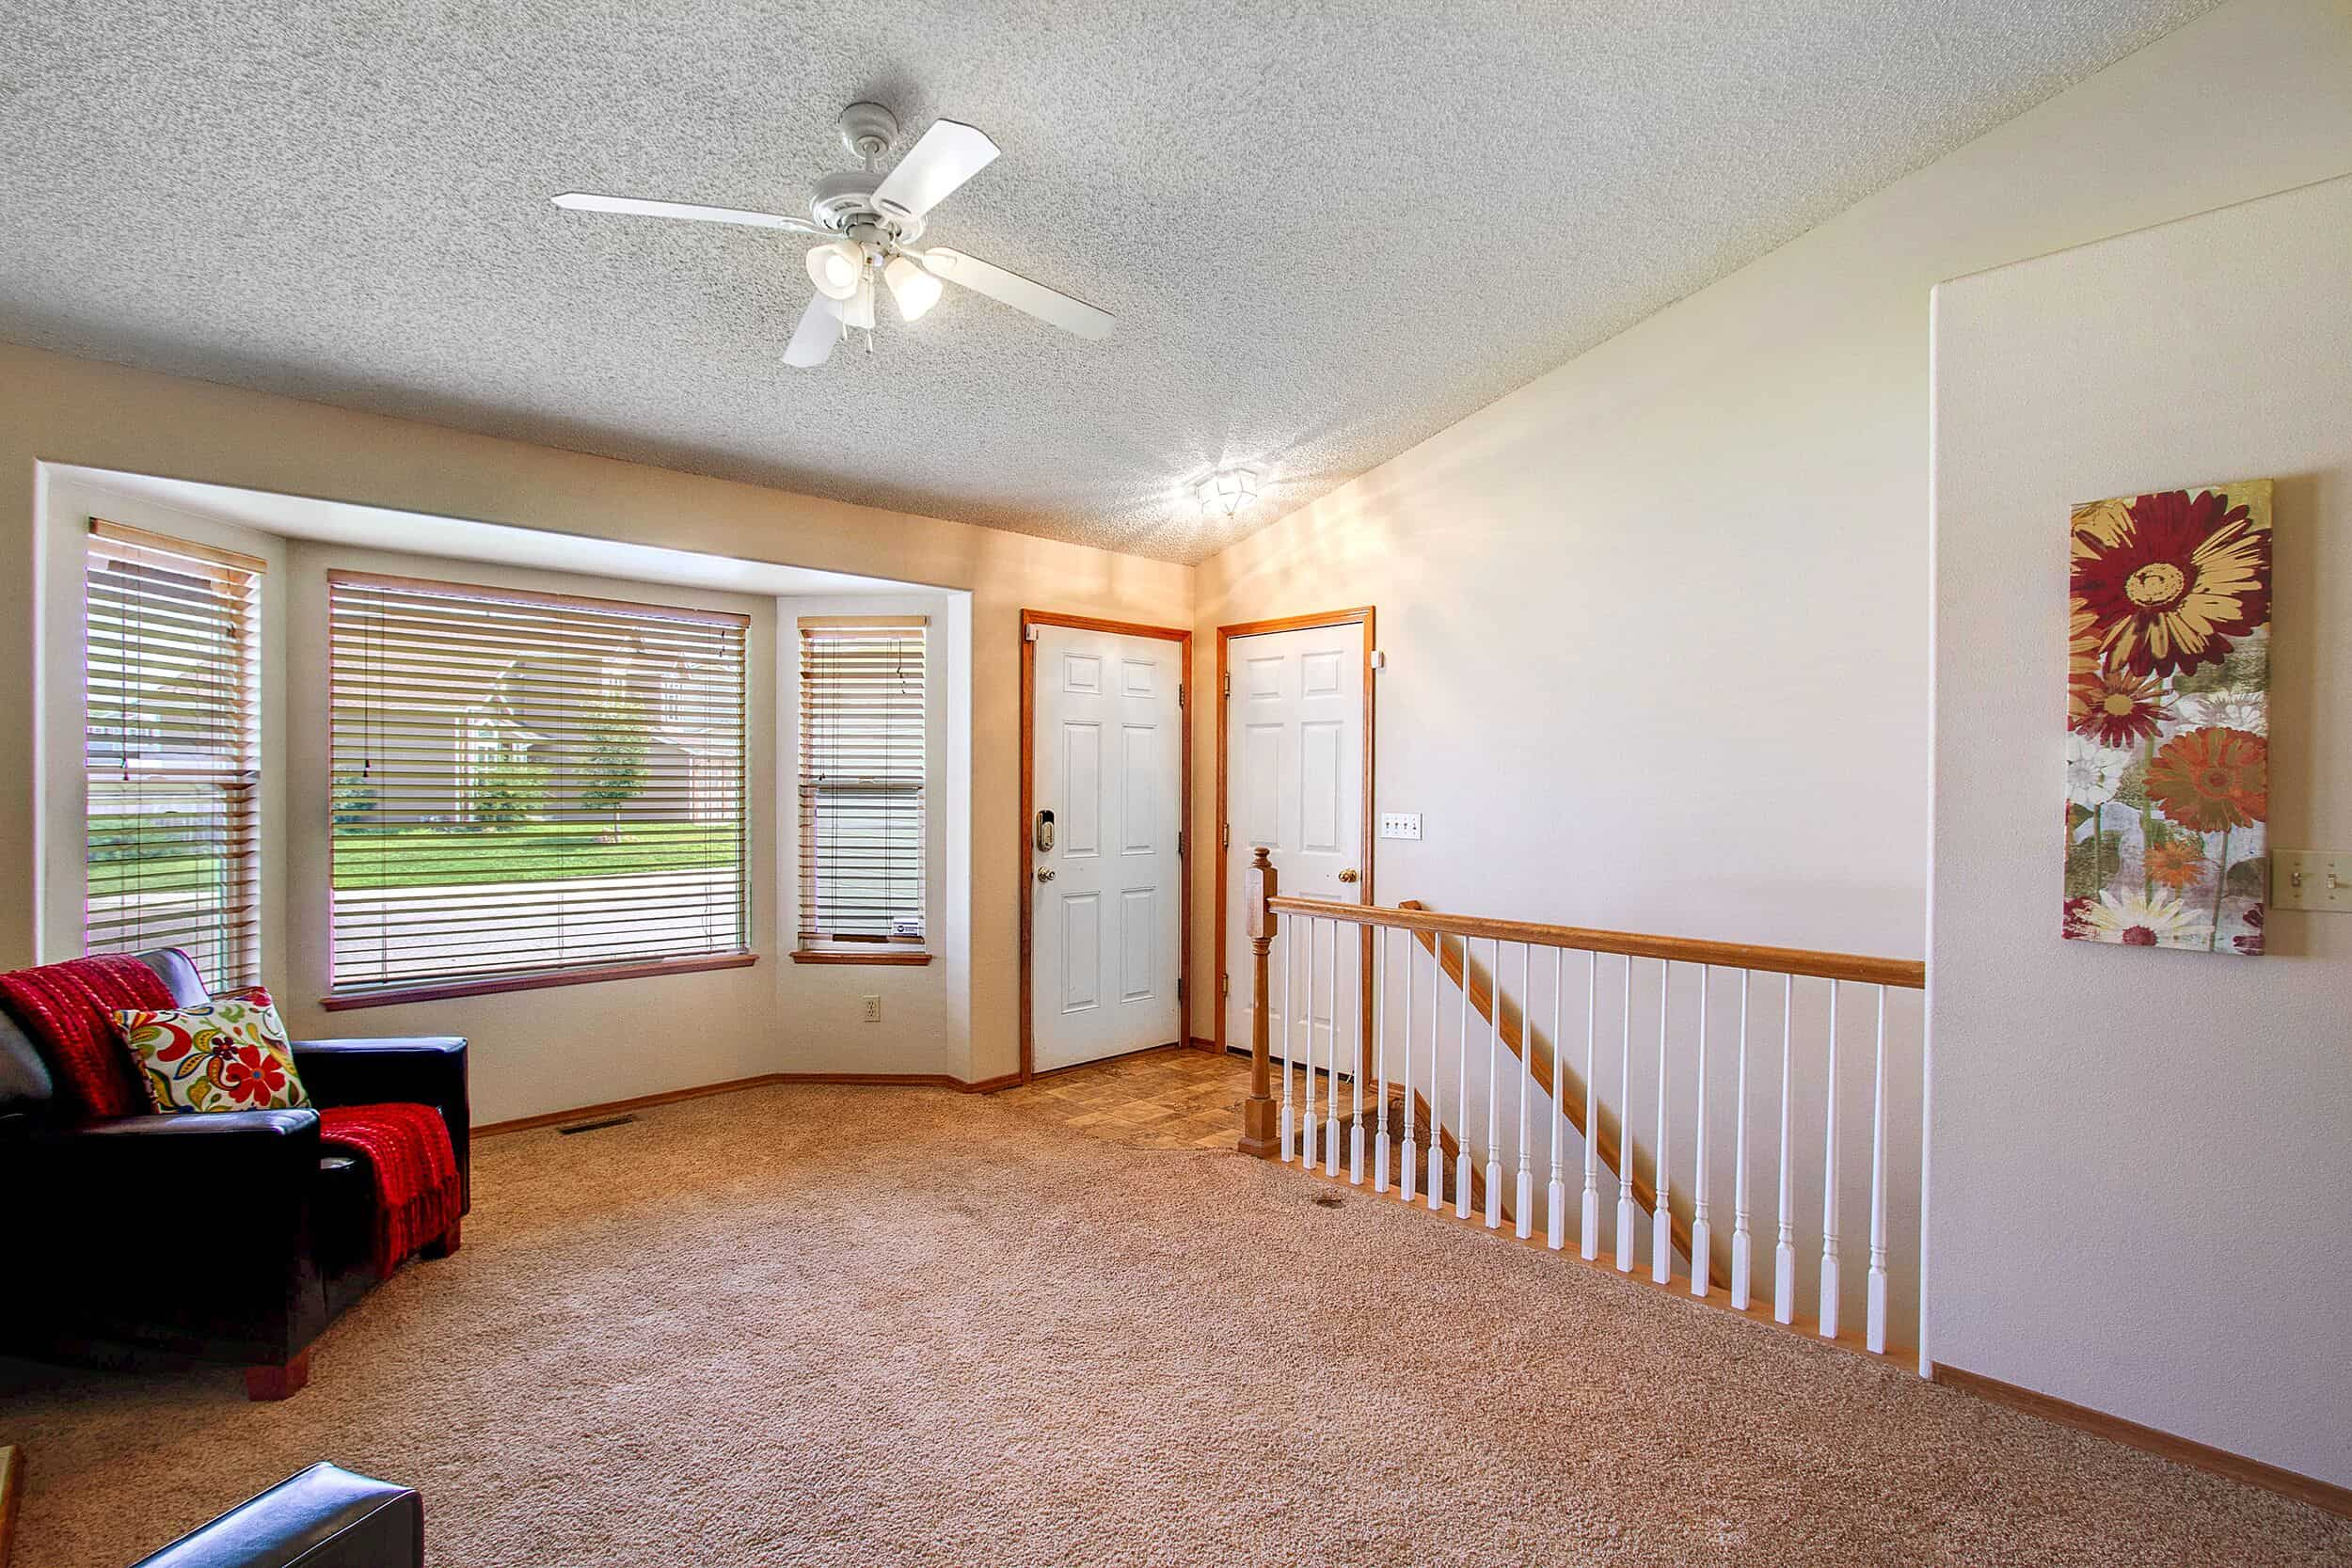 Entry with Large Bay Window in Living Room